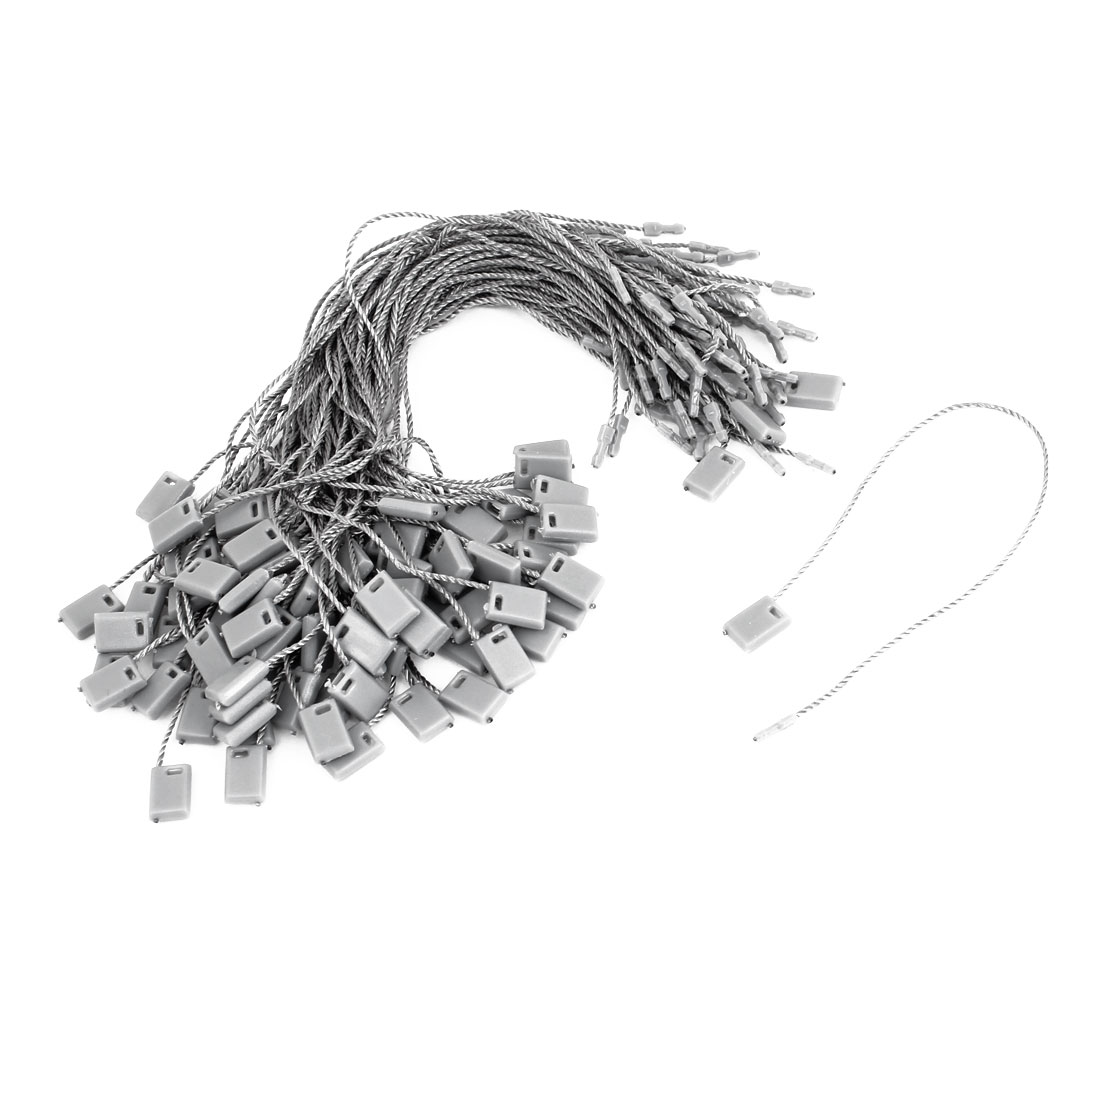 Gray Industrial Clothes Content Label Rope Goods Price Tag Nylon Strip 100PCS